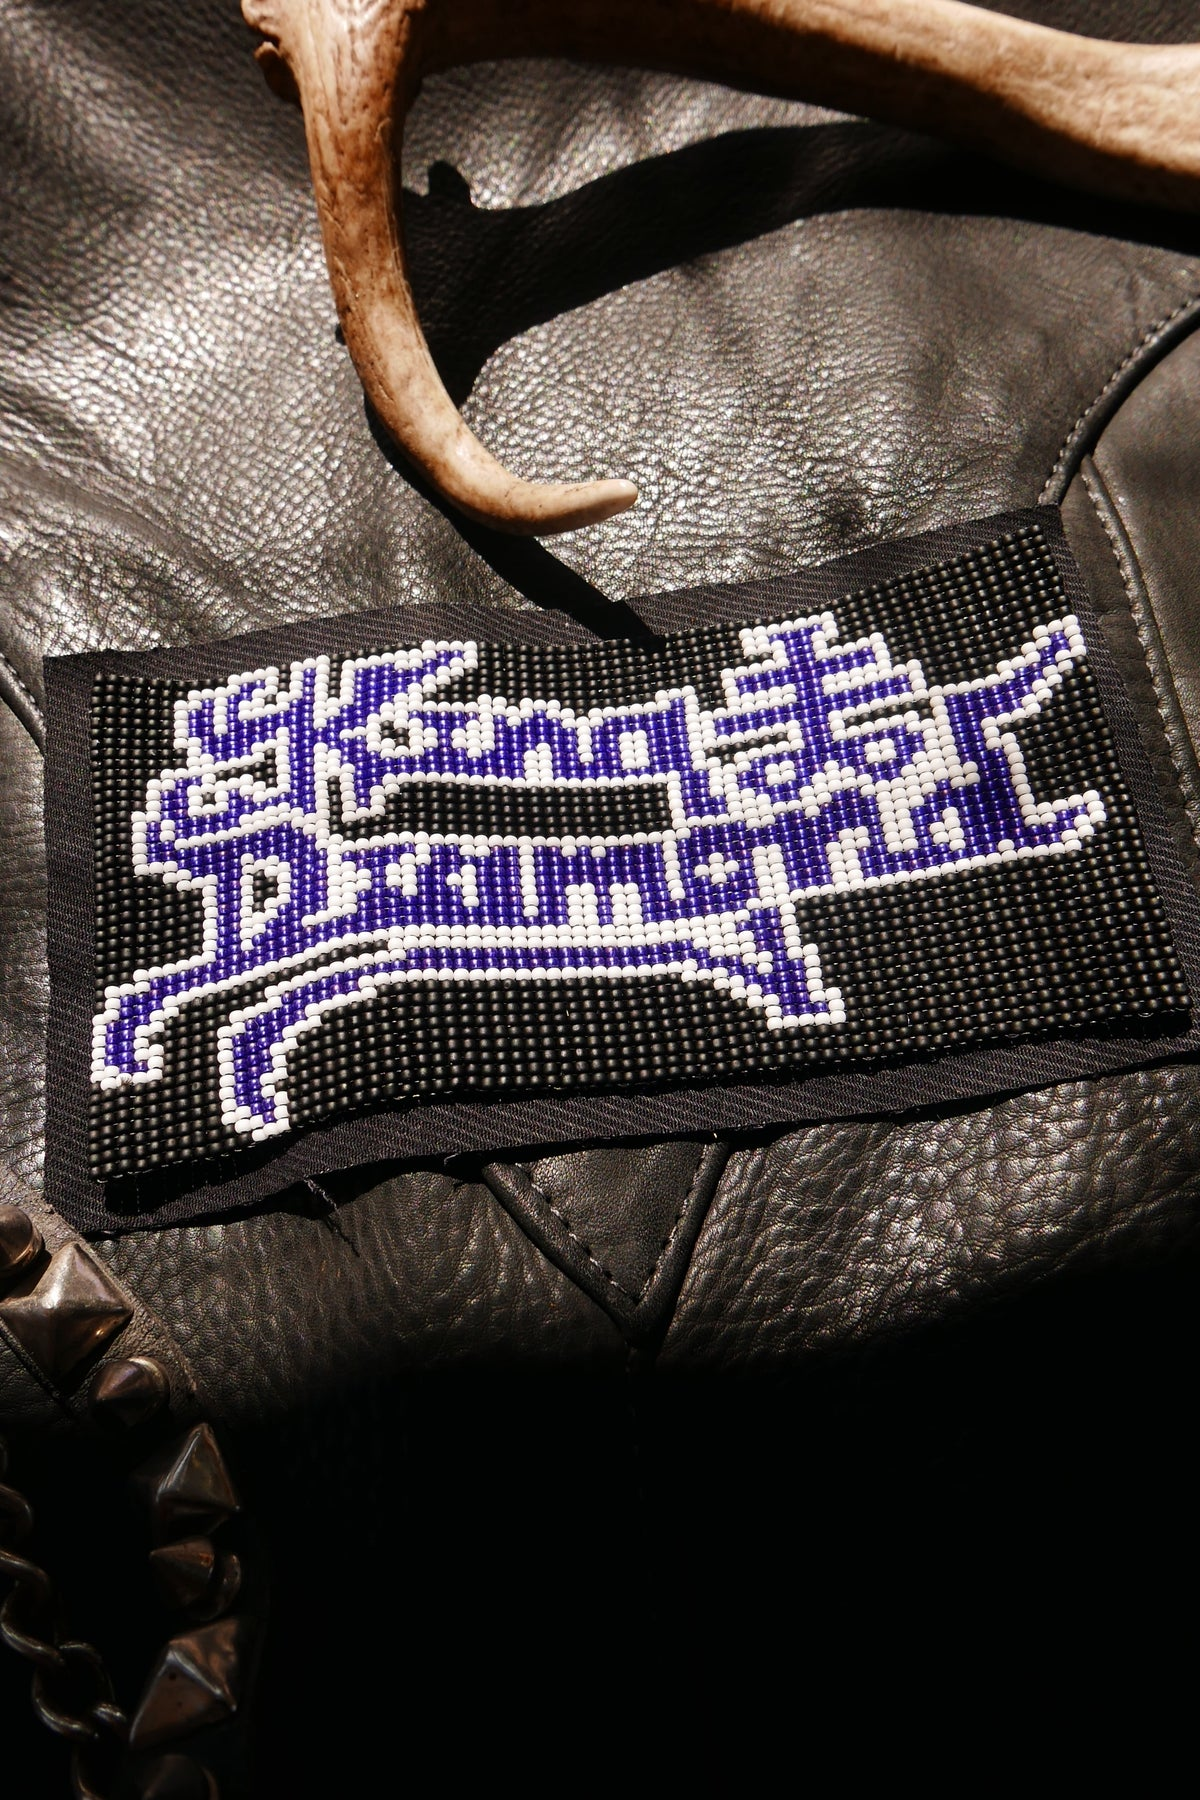 Image of King Diamond patch